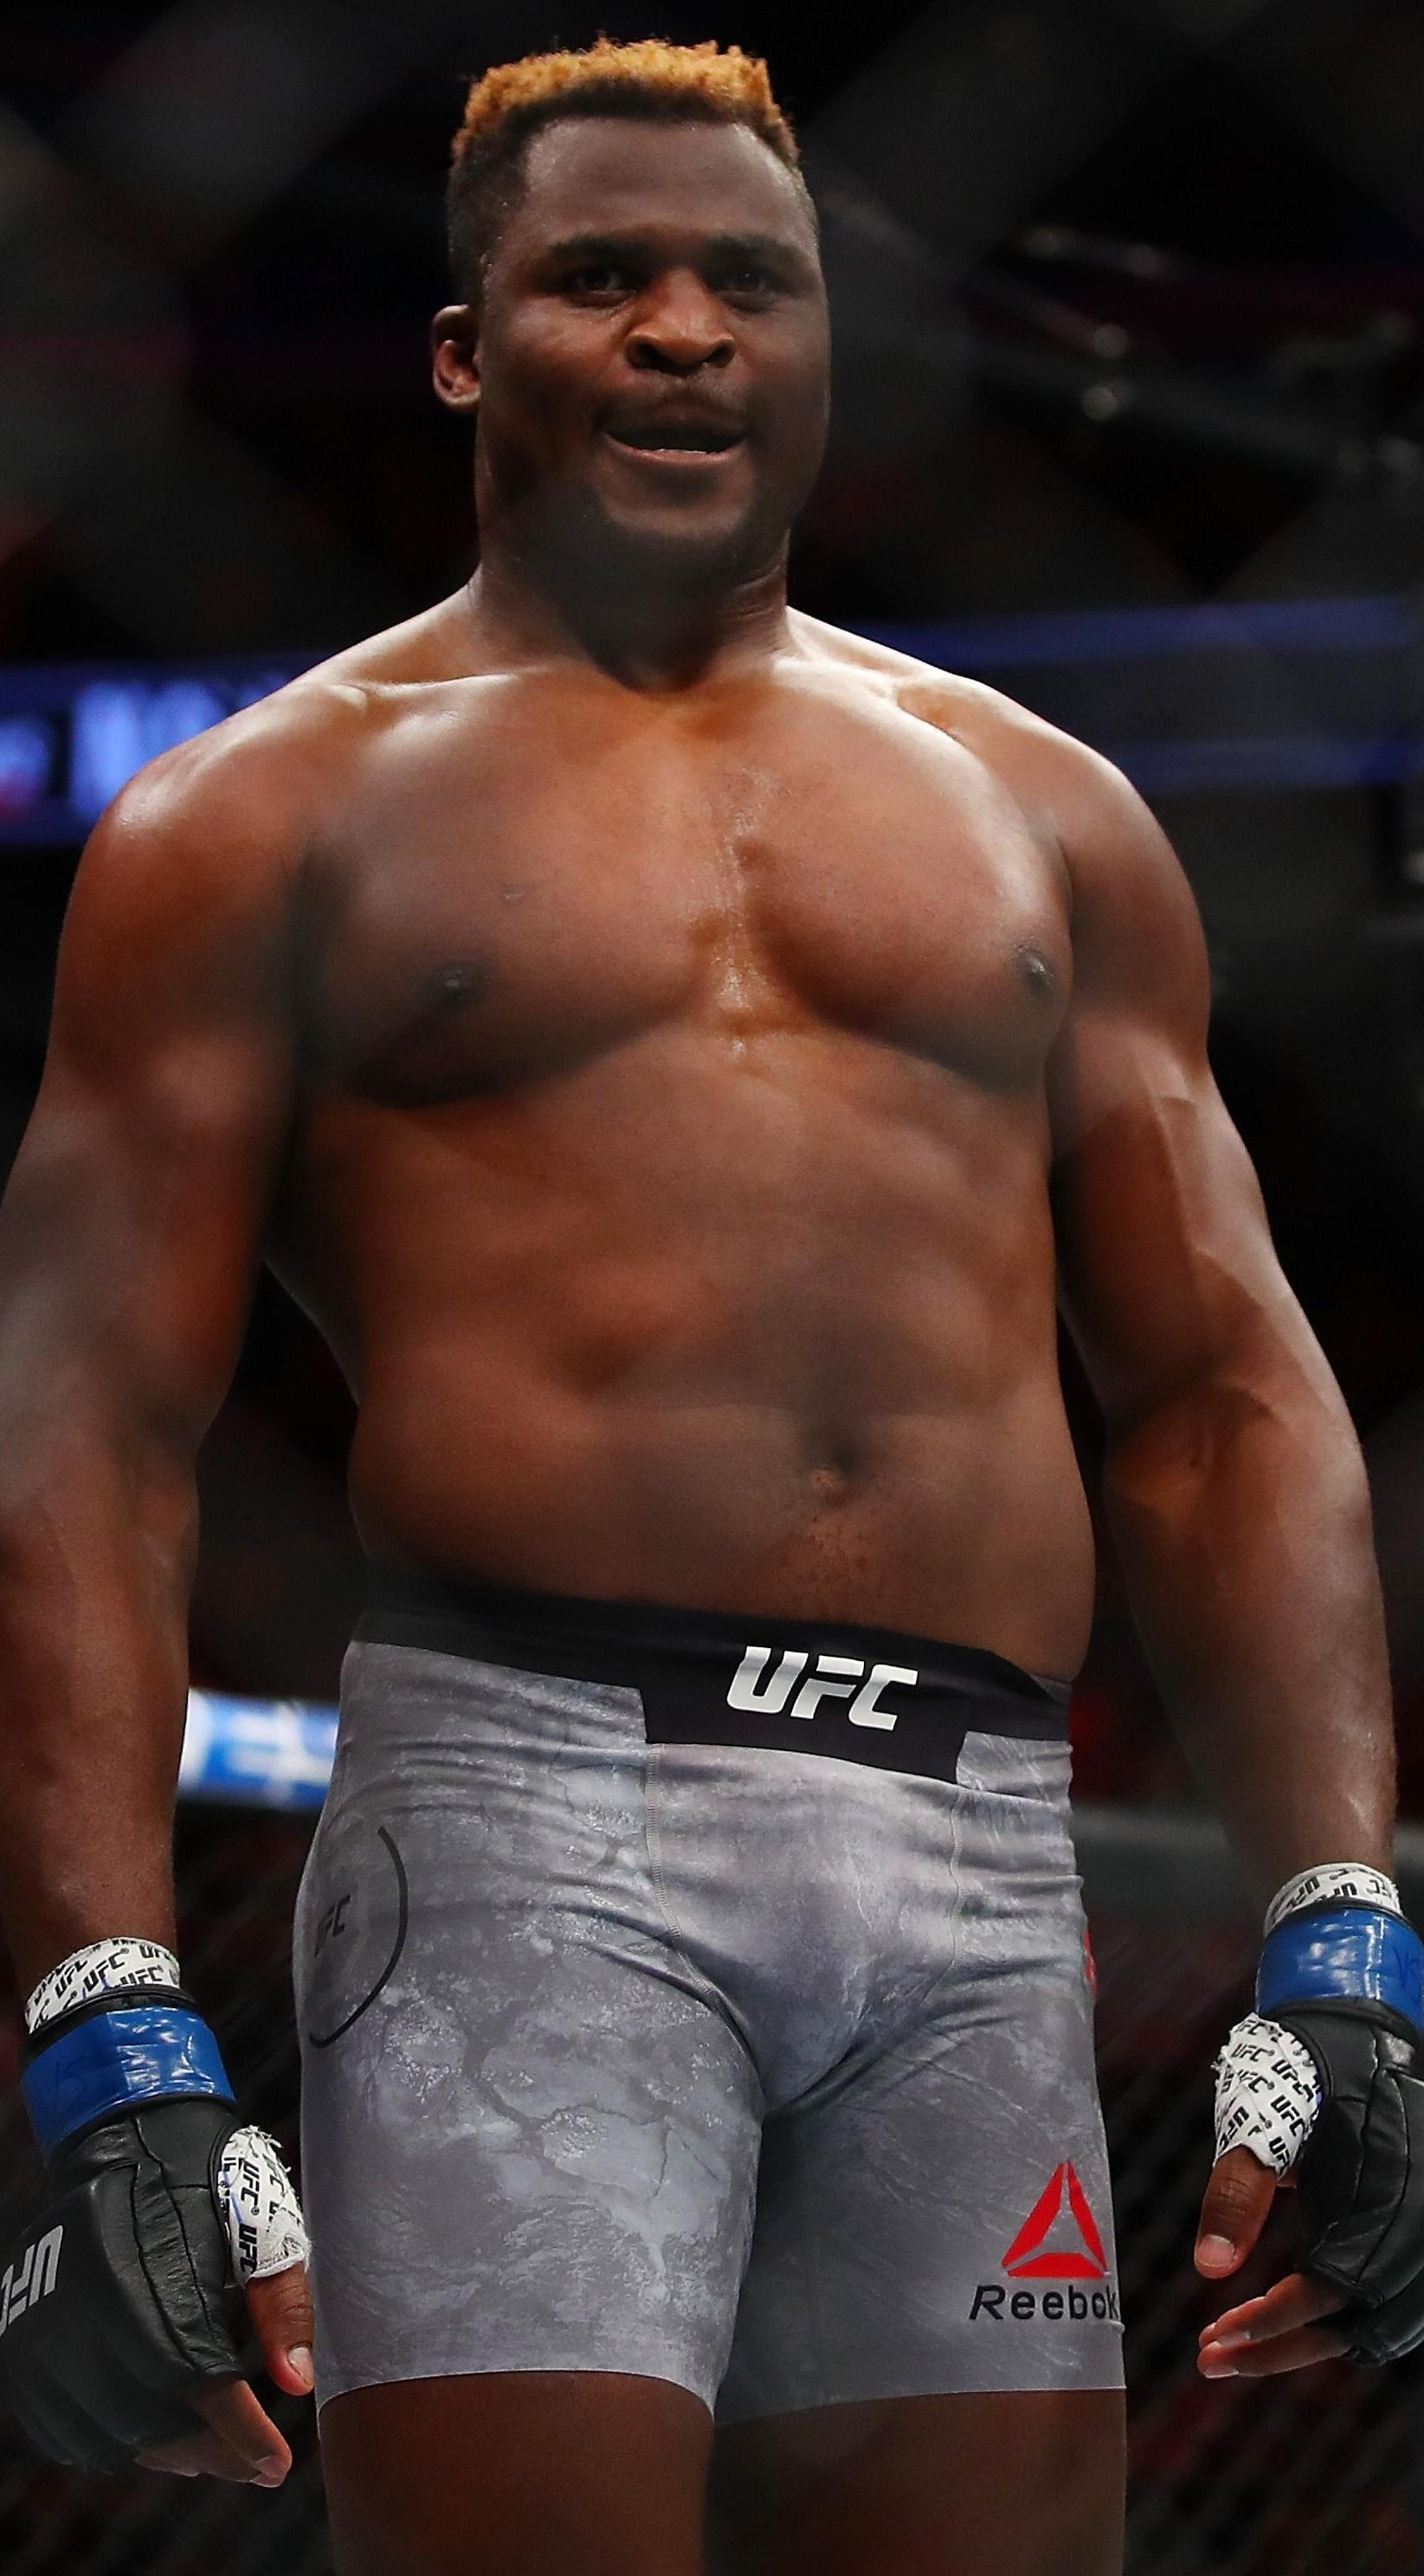 Francis Ngannou faced Miocic earlier this year and the fight went the distance